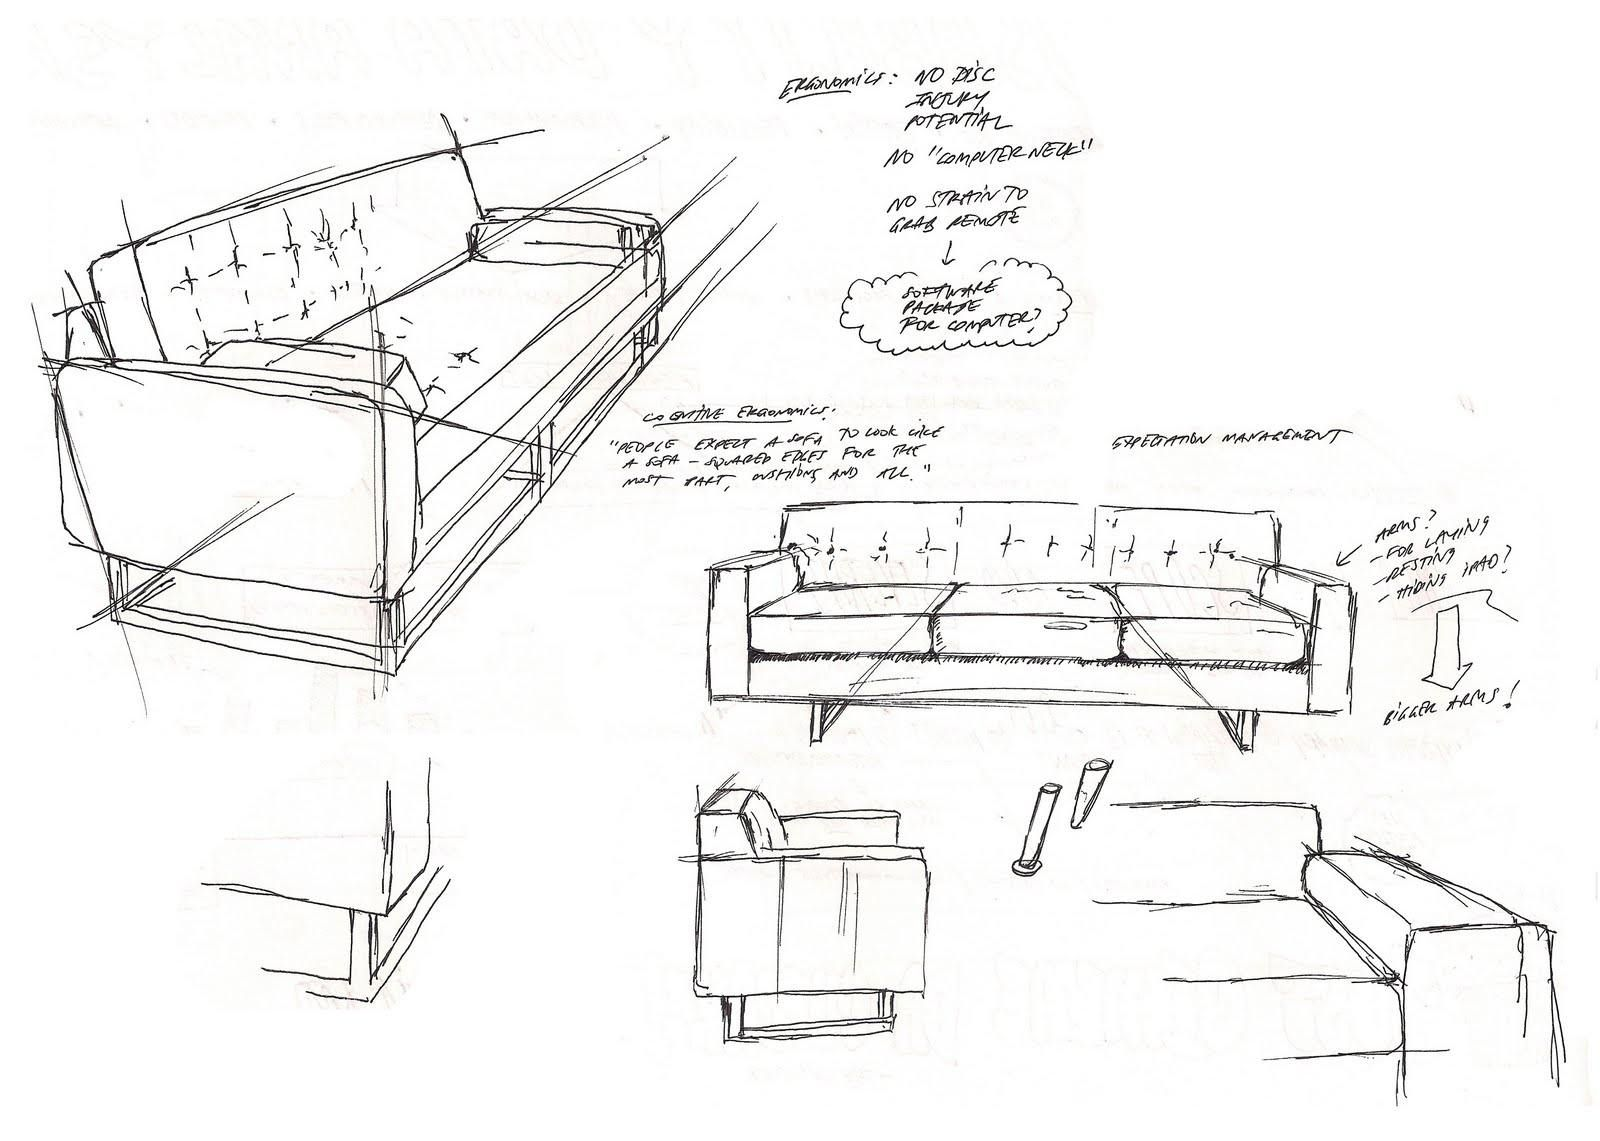 Ergonomics For A Coffee Table Maxohome Furniture Design Sketches Design Sketch Diagram Design